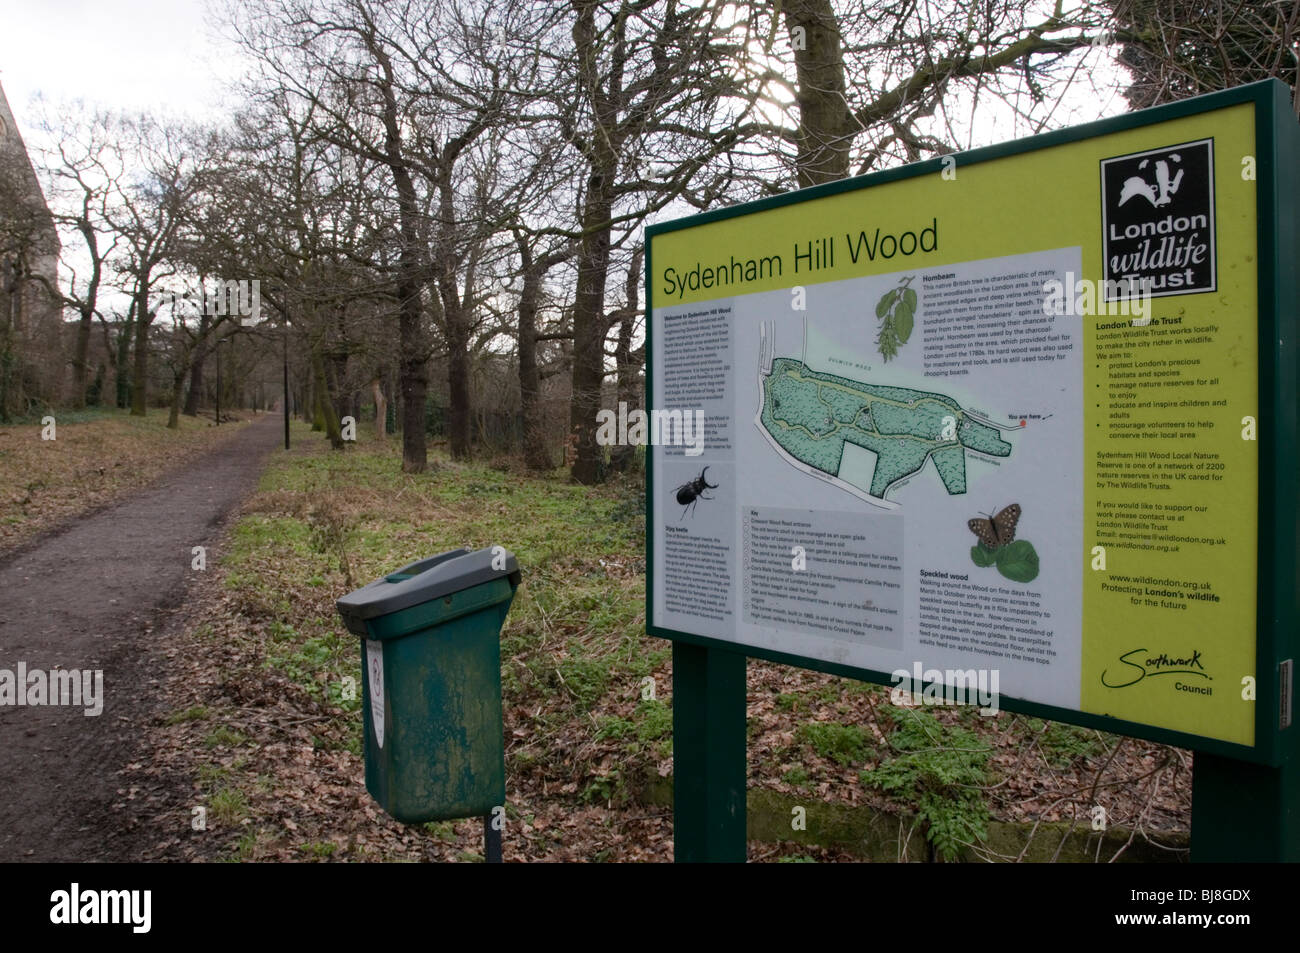 Information Sign at entrance to Sydenham Hill Wood, South London, England - Stock Image